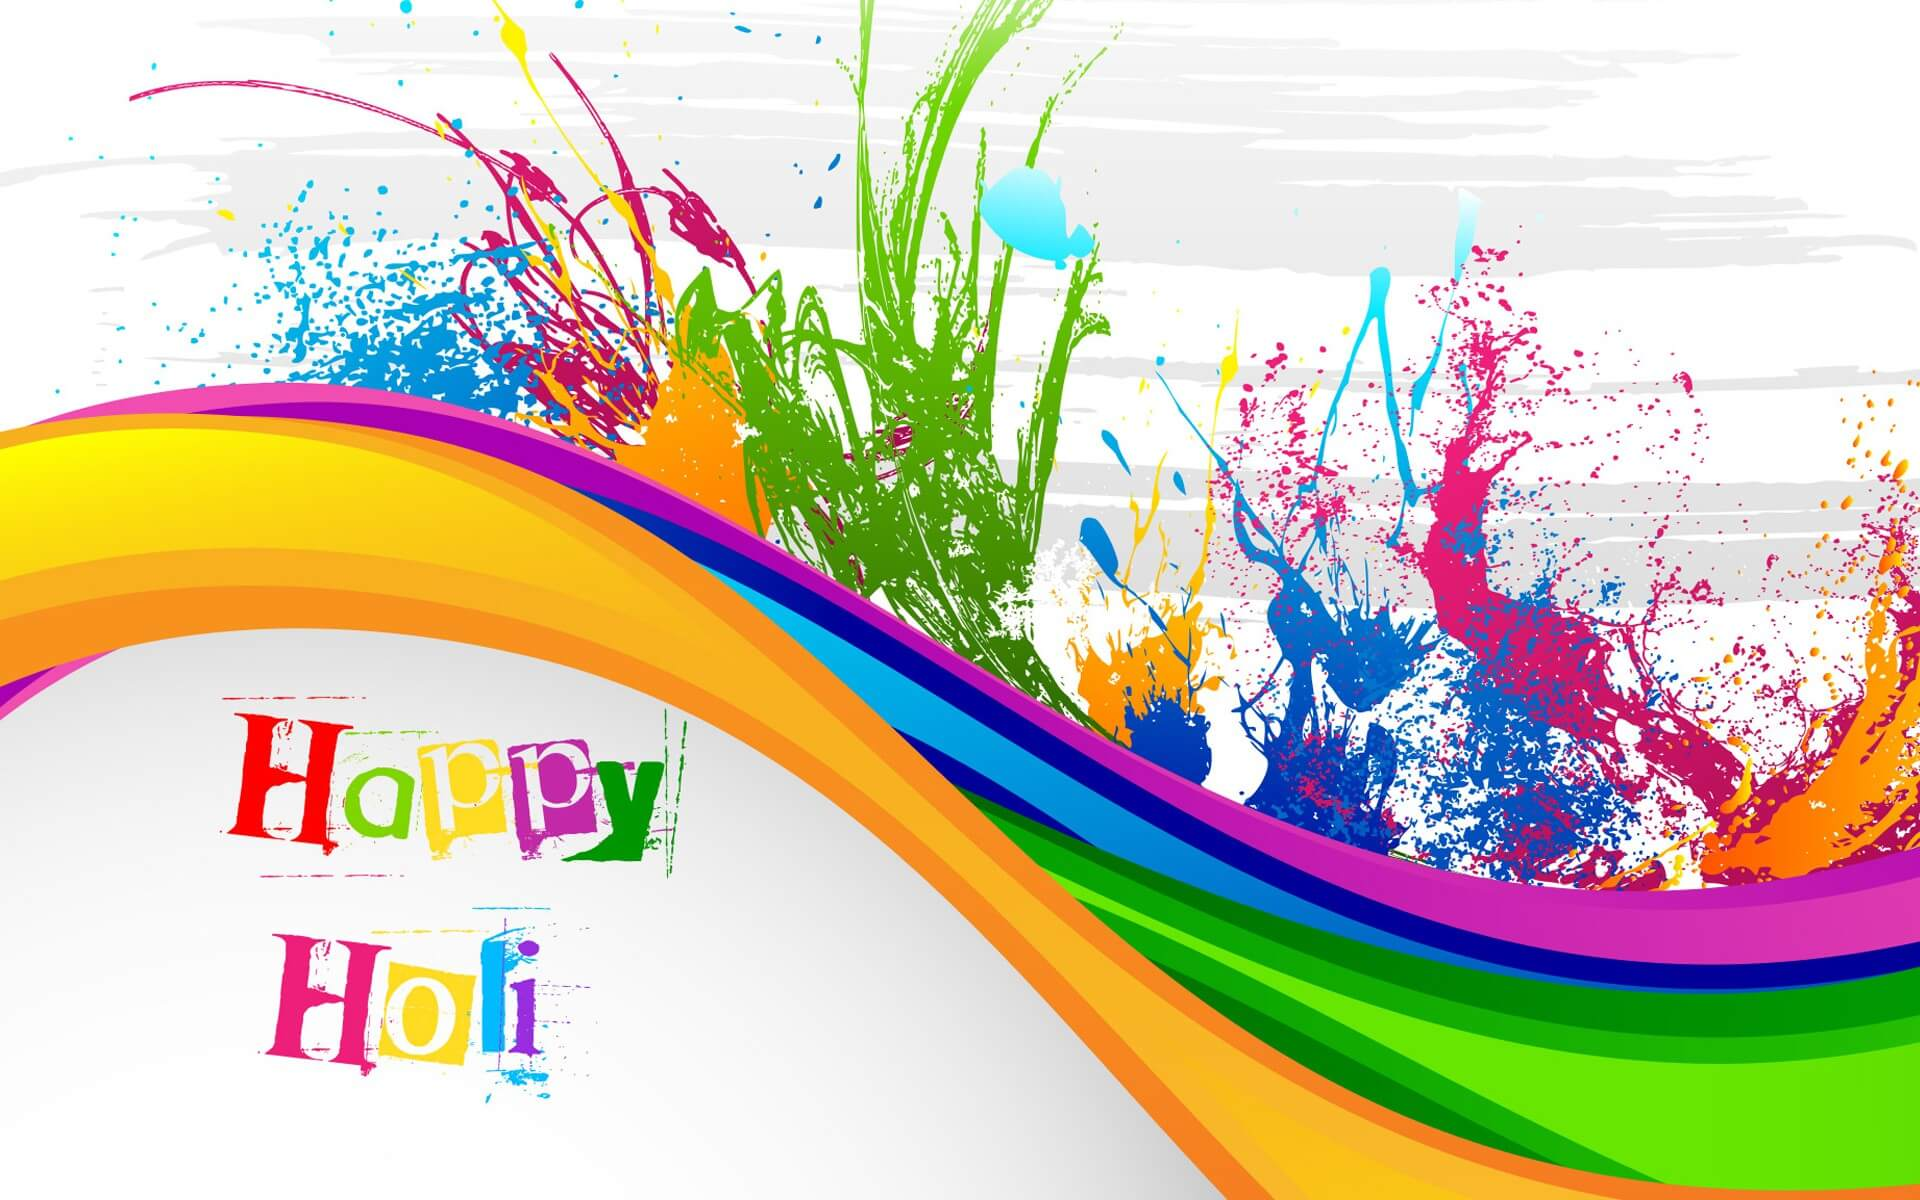 Happy Holi Wallpaper Background Hd 3d on Quotes For Teachers Day Hd Wallpapers Plus